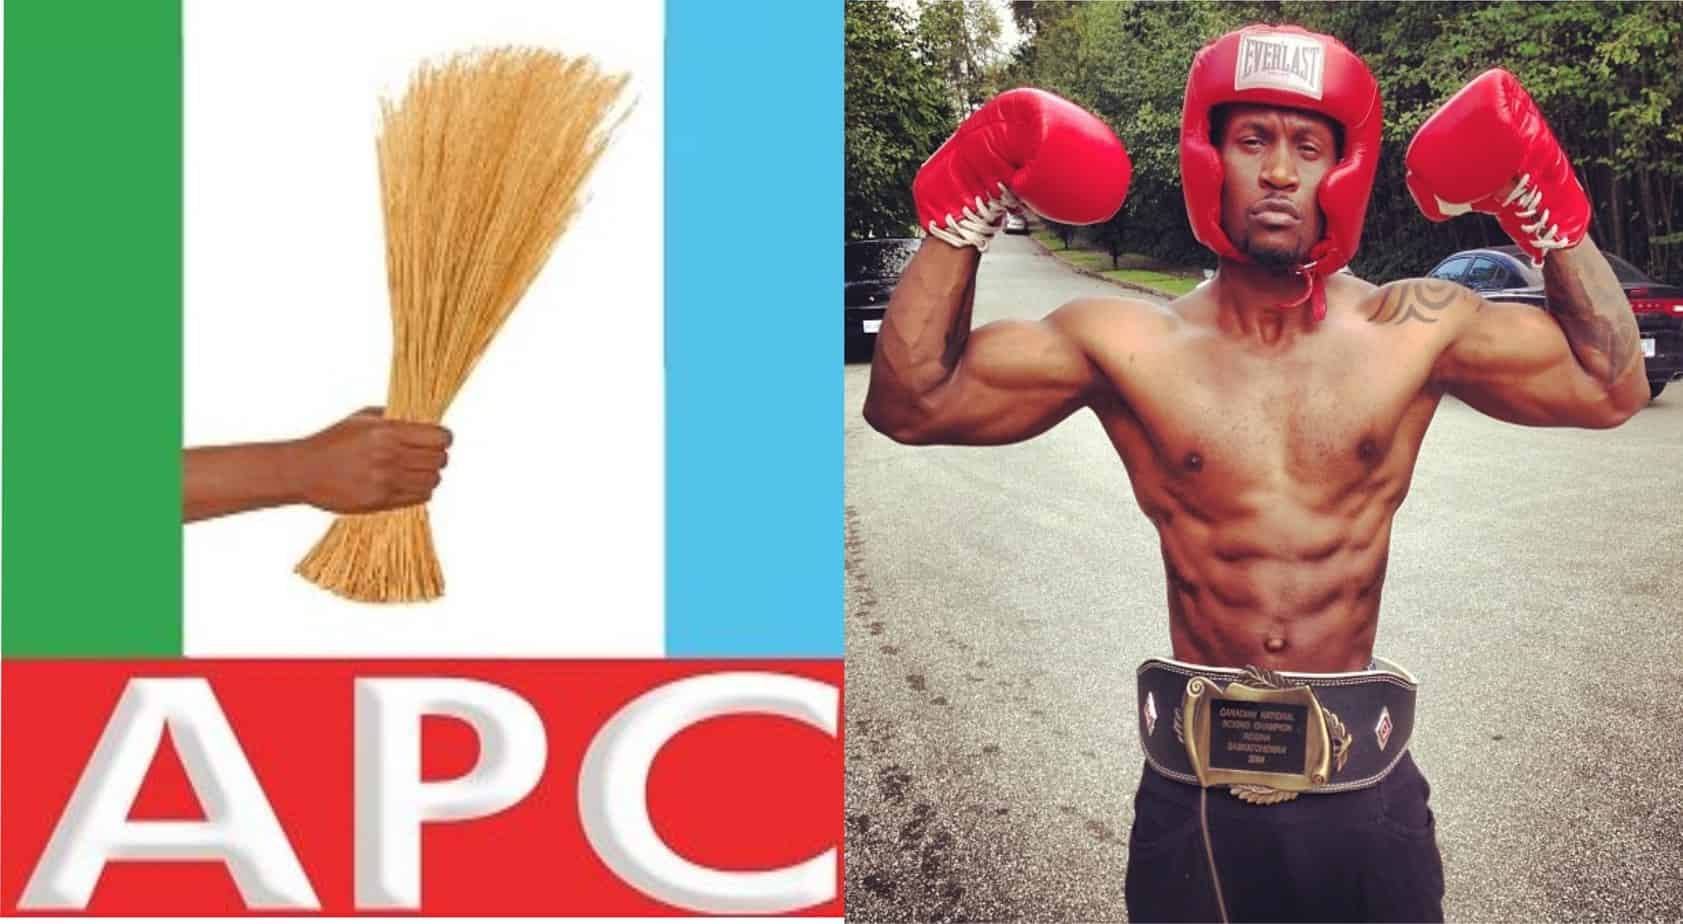 APC vs PETER OKOYE